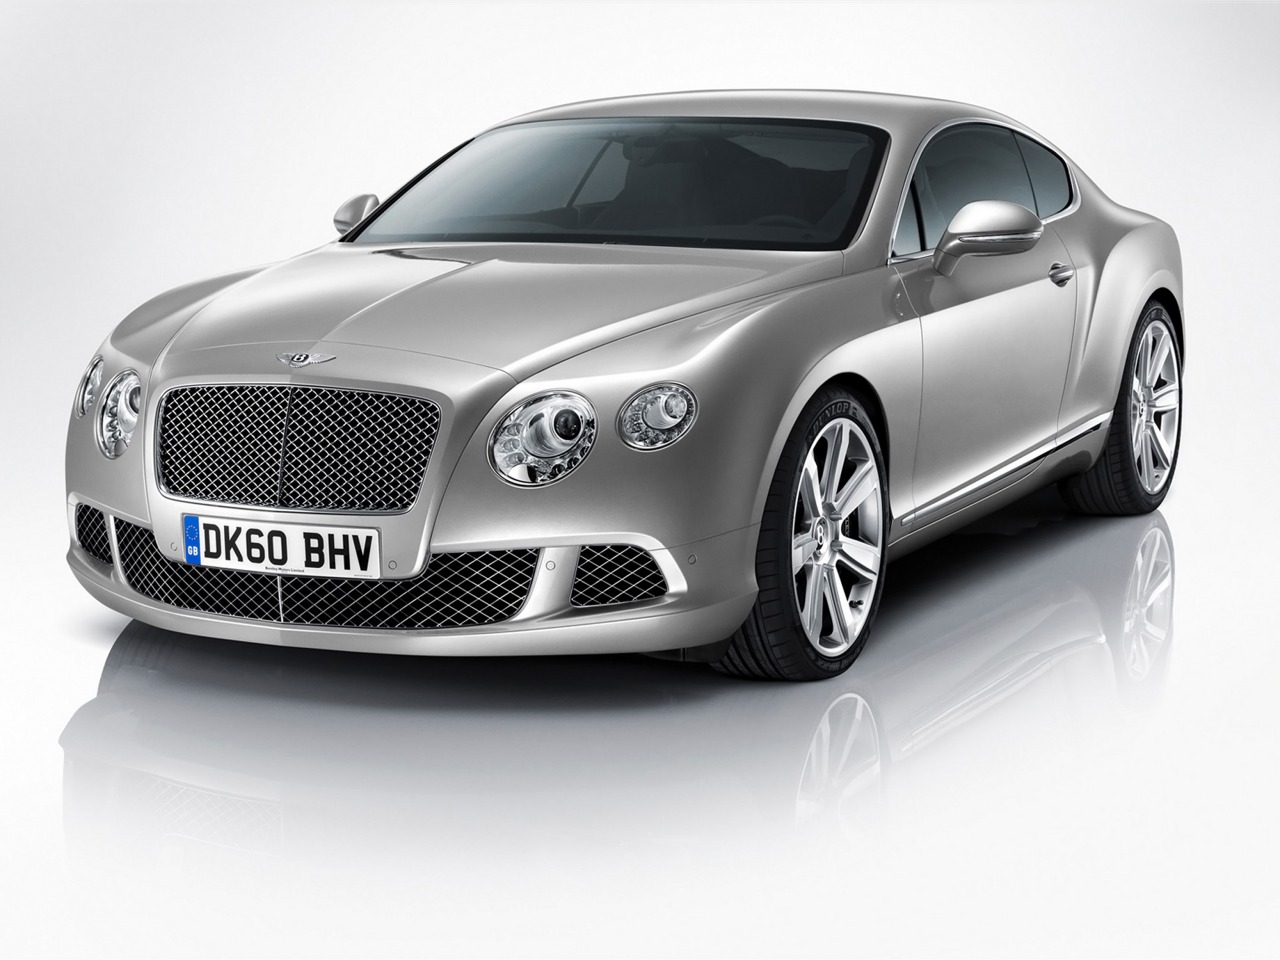 Make: Bentley